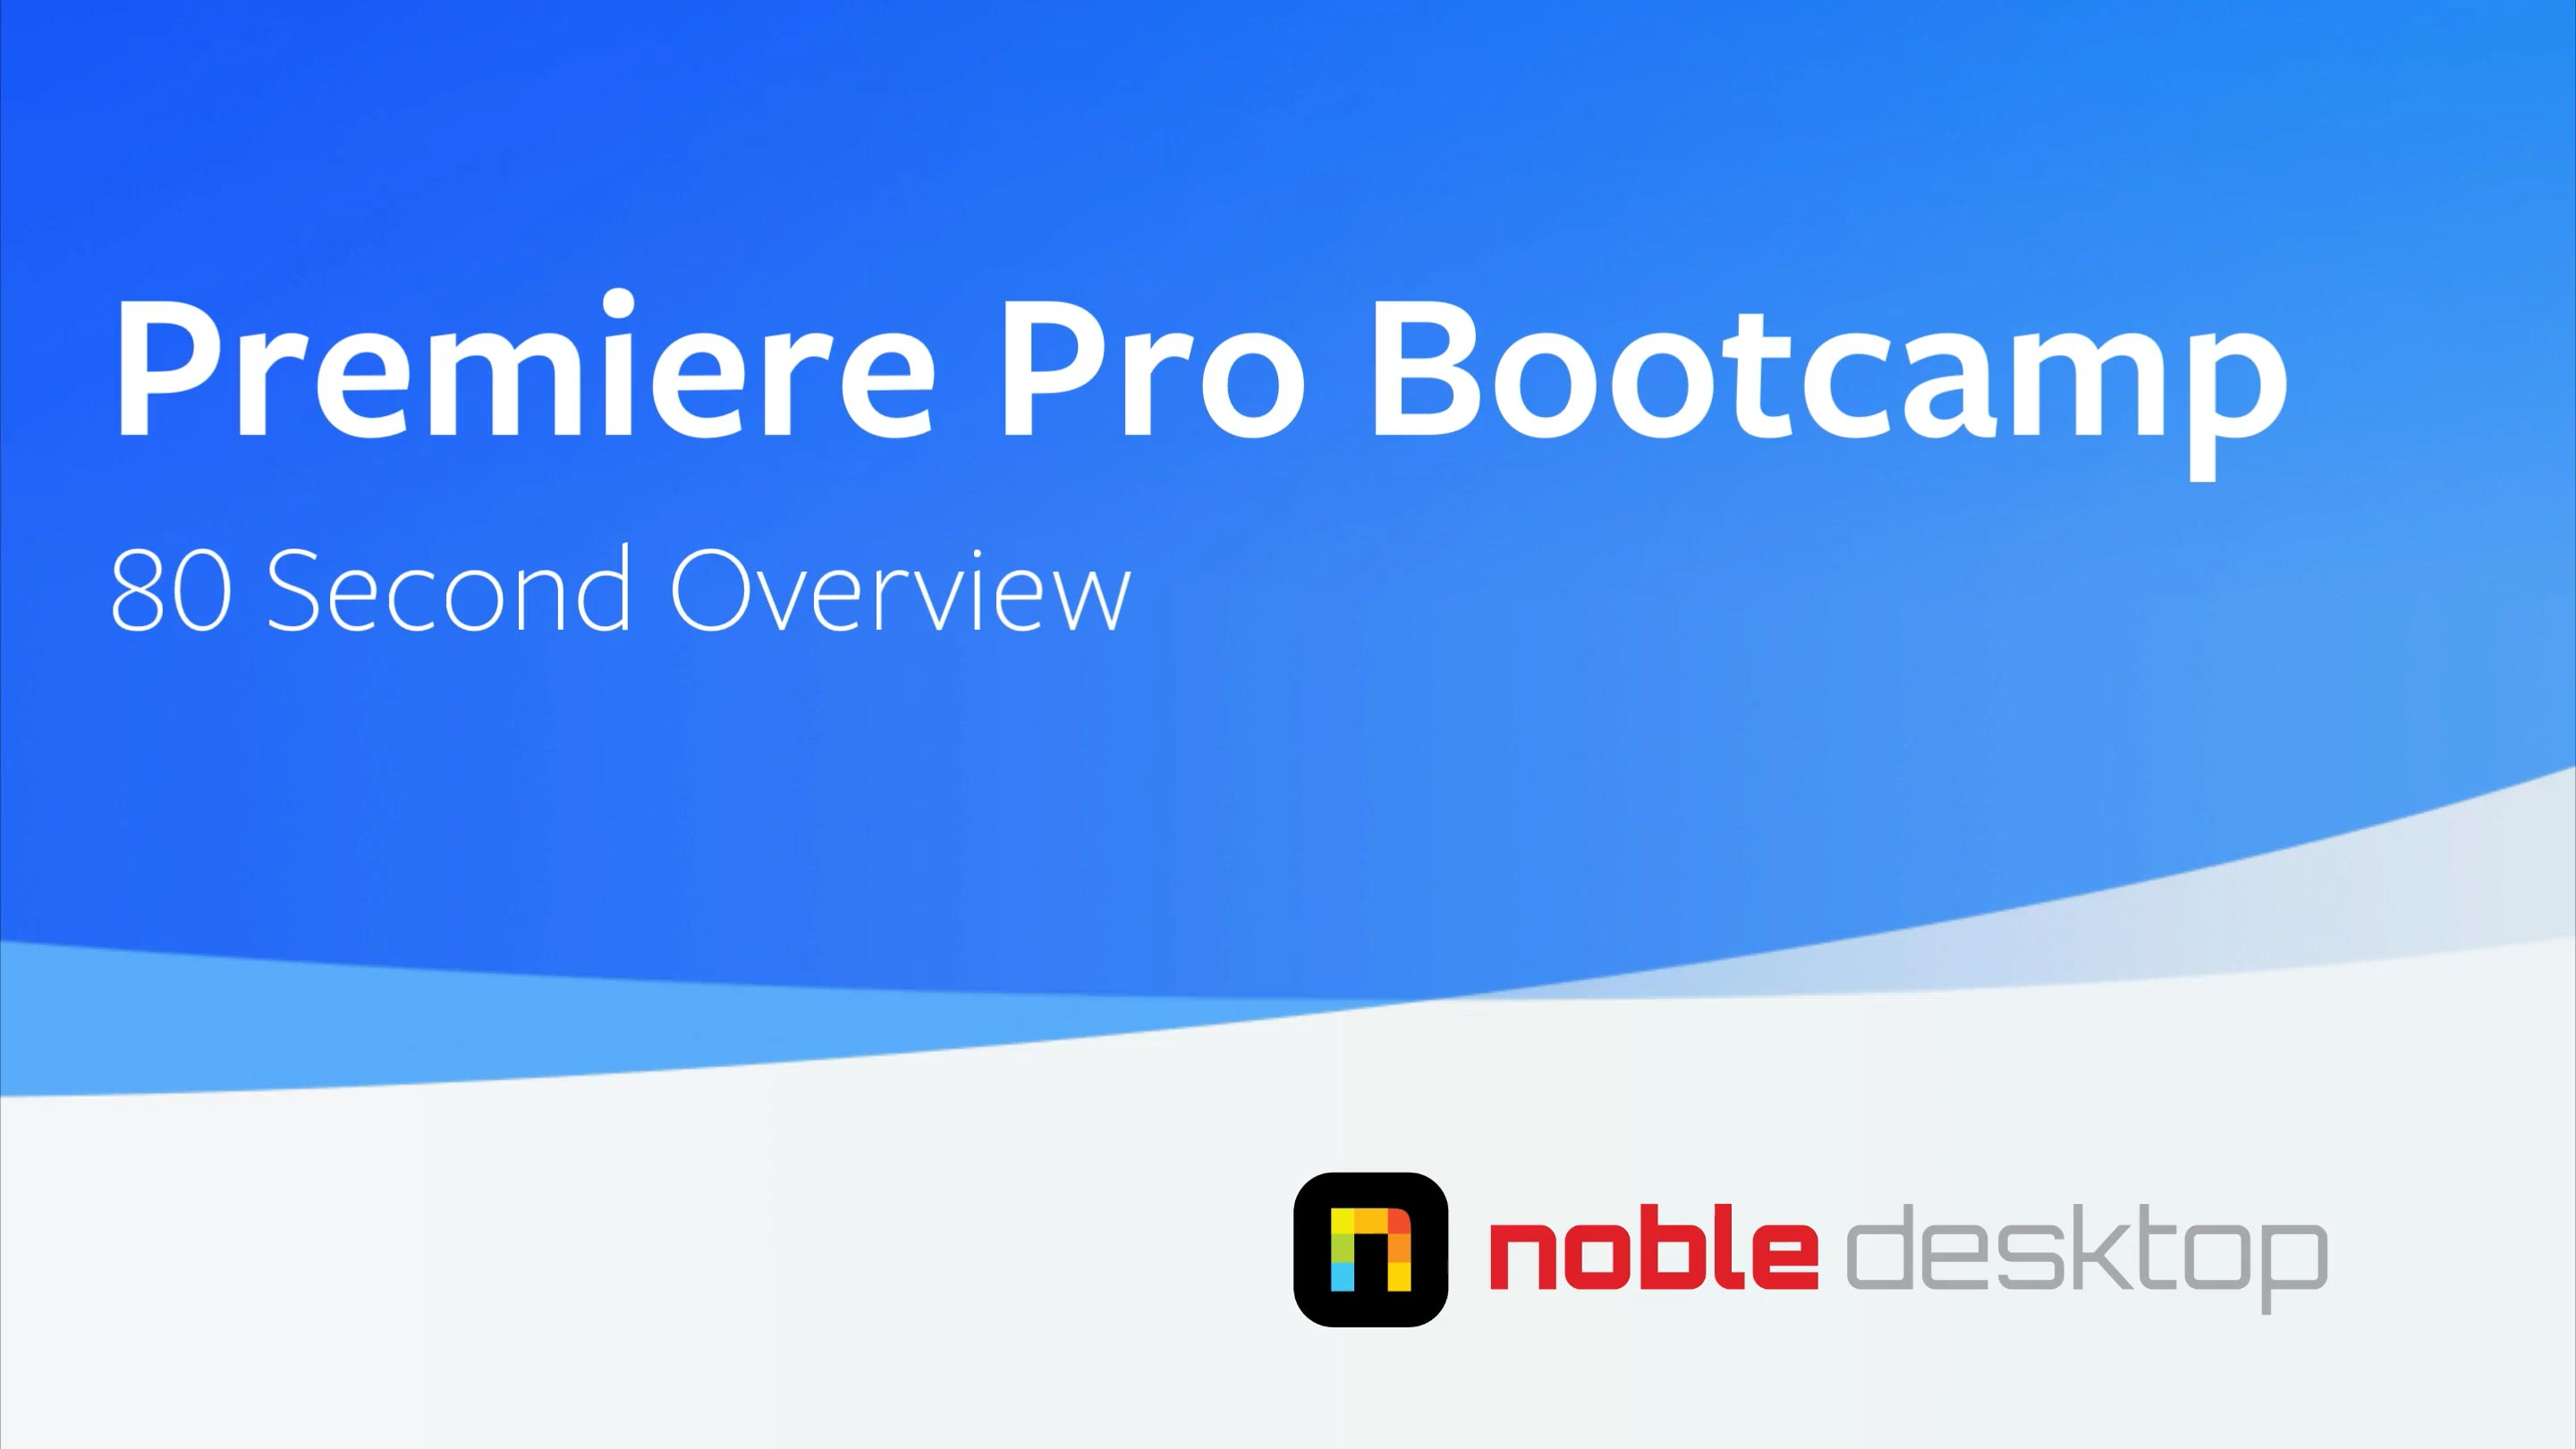 Premiere Pro Bootcamp Class Overview